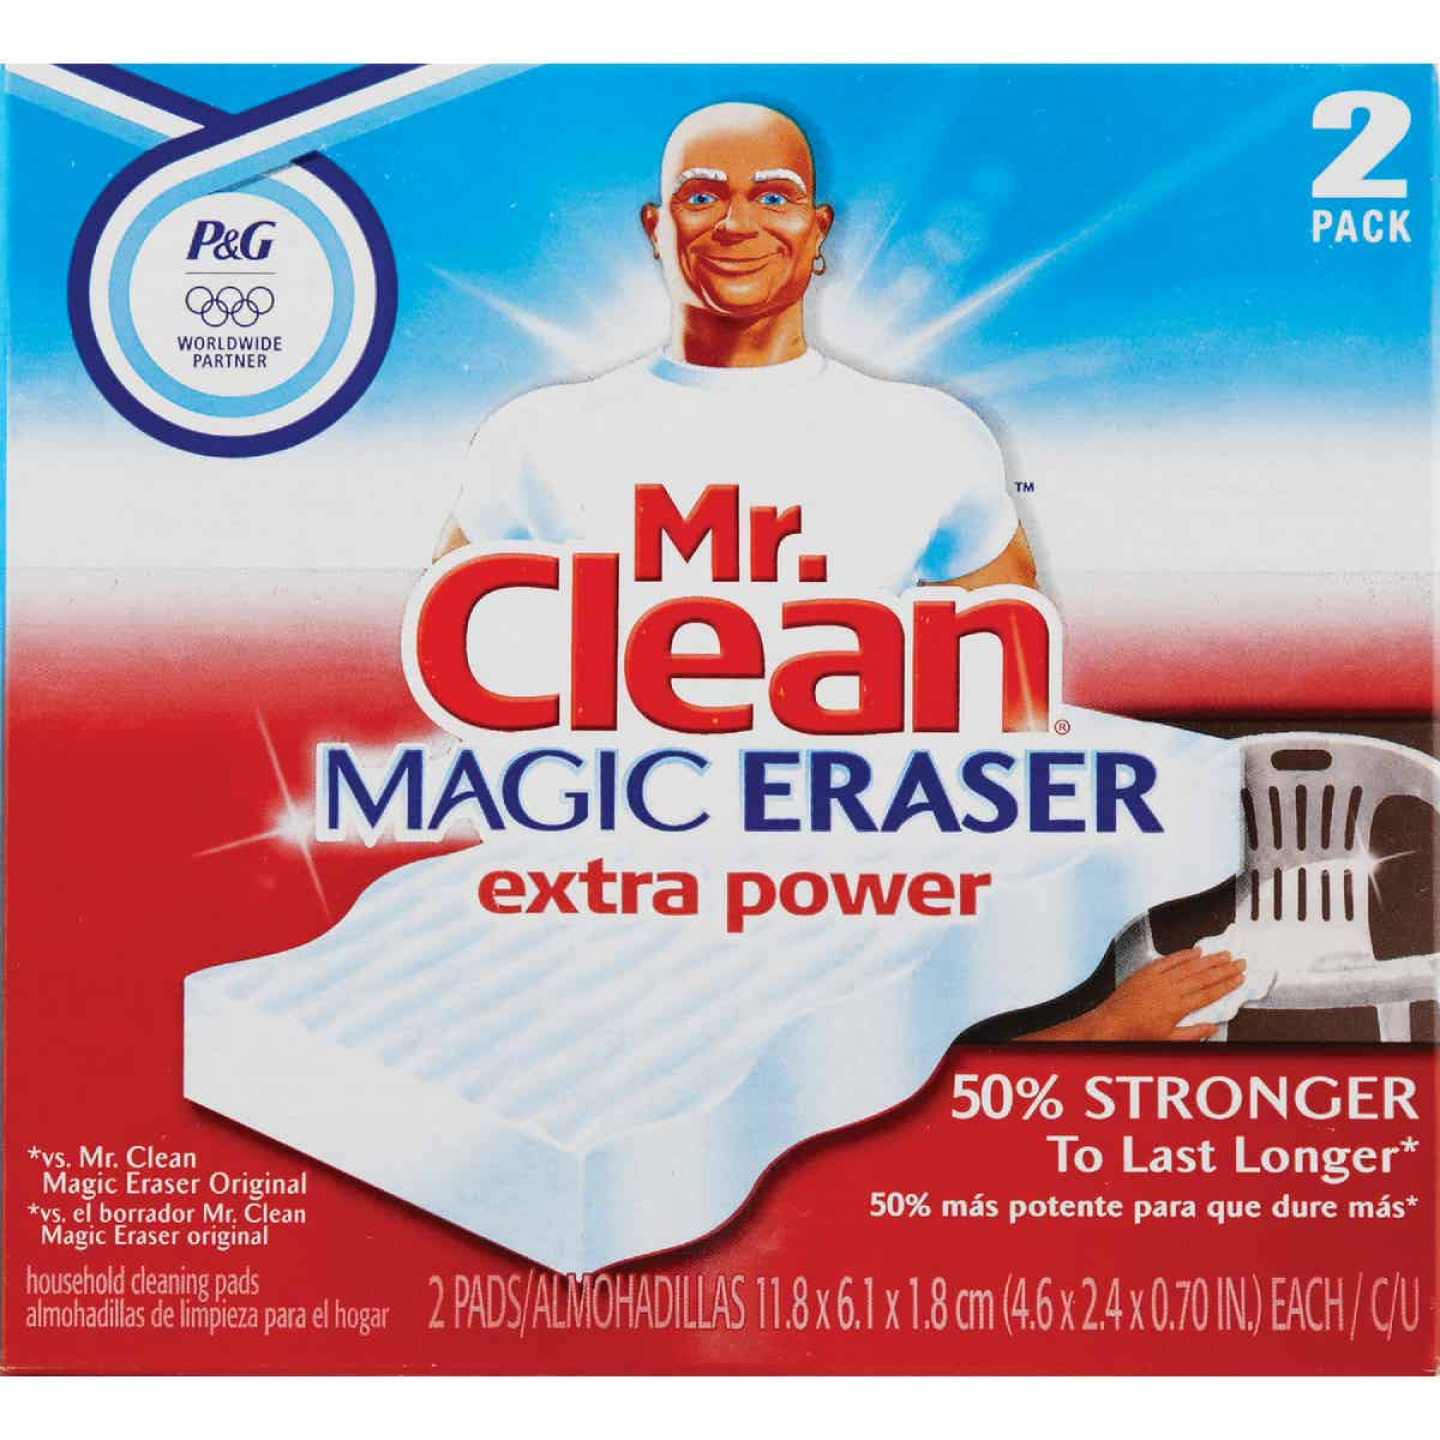 Mr. Clean Magic Eraser Cleansing Pad with Extra Power (2 Count) Image 2